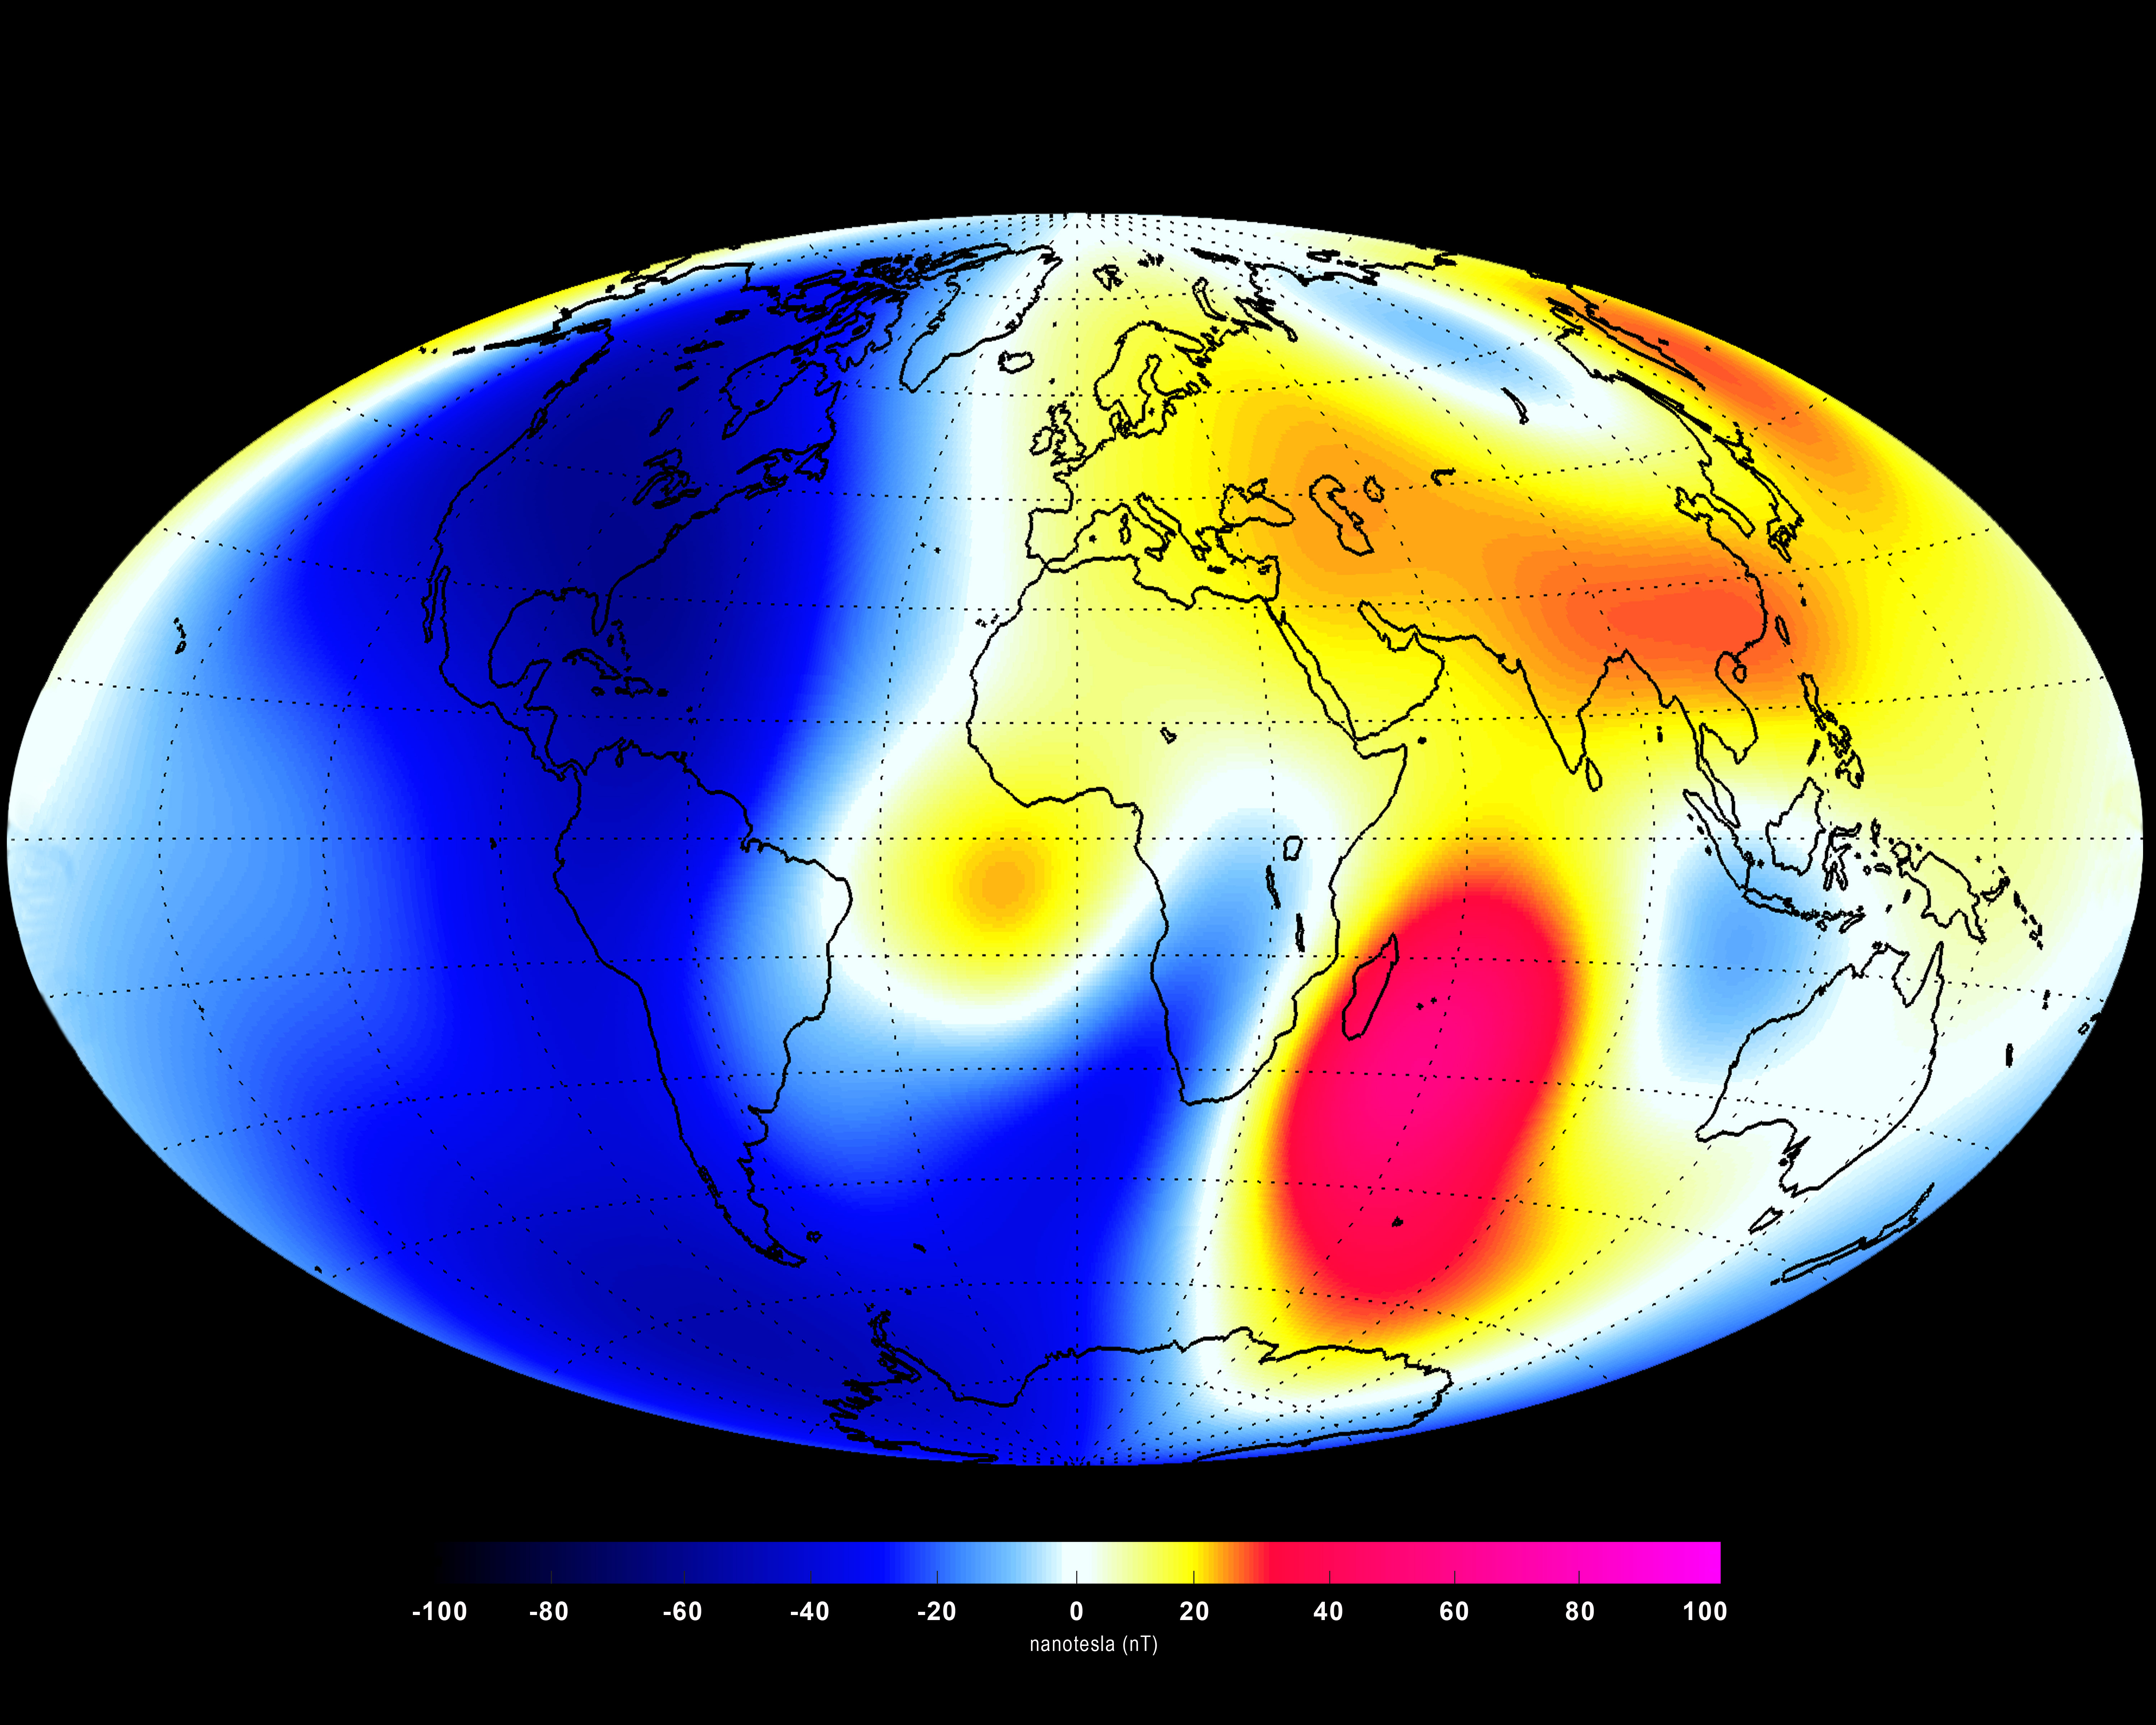 Image showing changes in Earth's magnetic field between January 1 and June 20, 2014